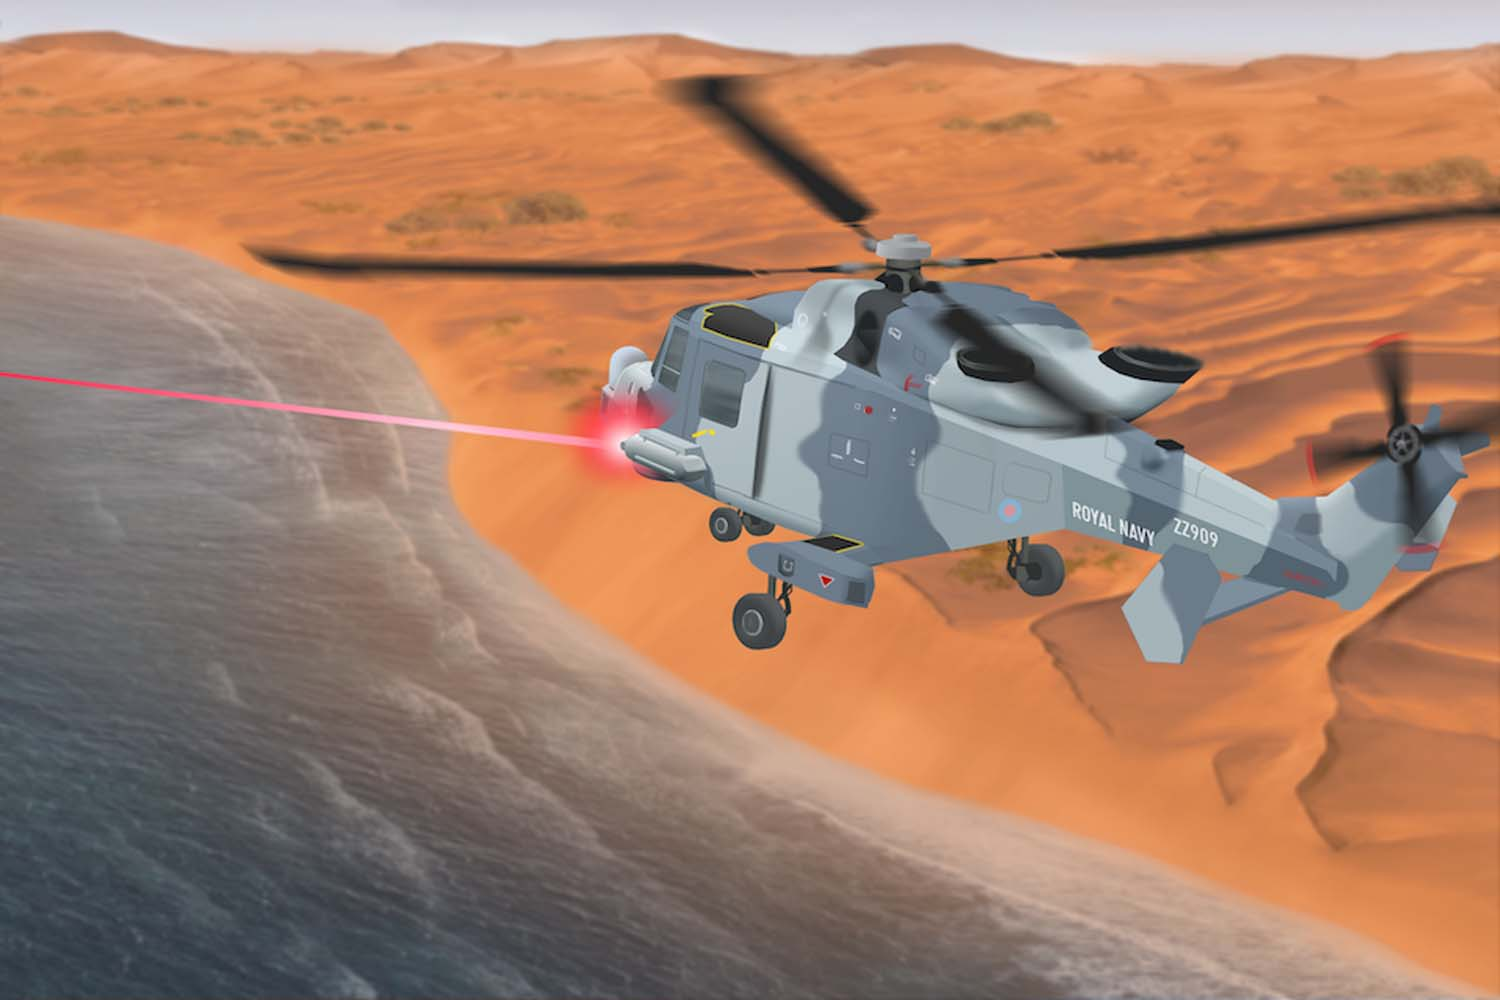 UK Invests Millions in Laser Weapons Systems for Royal Navy